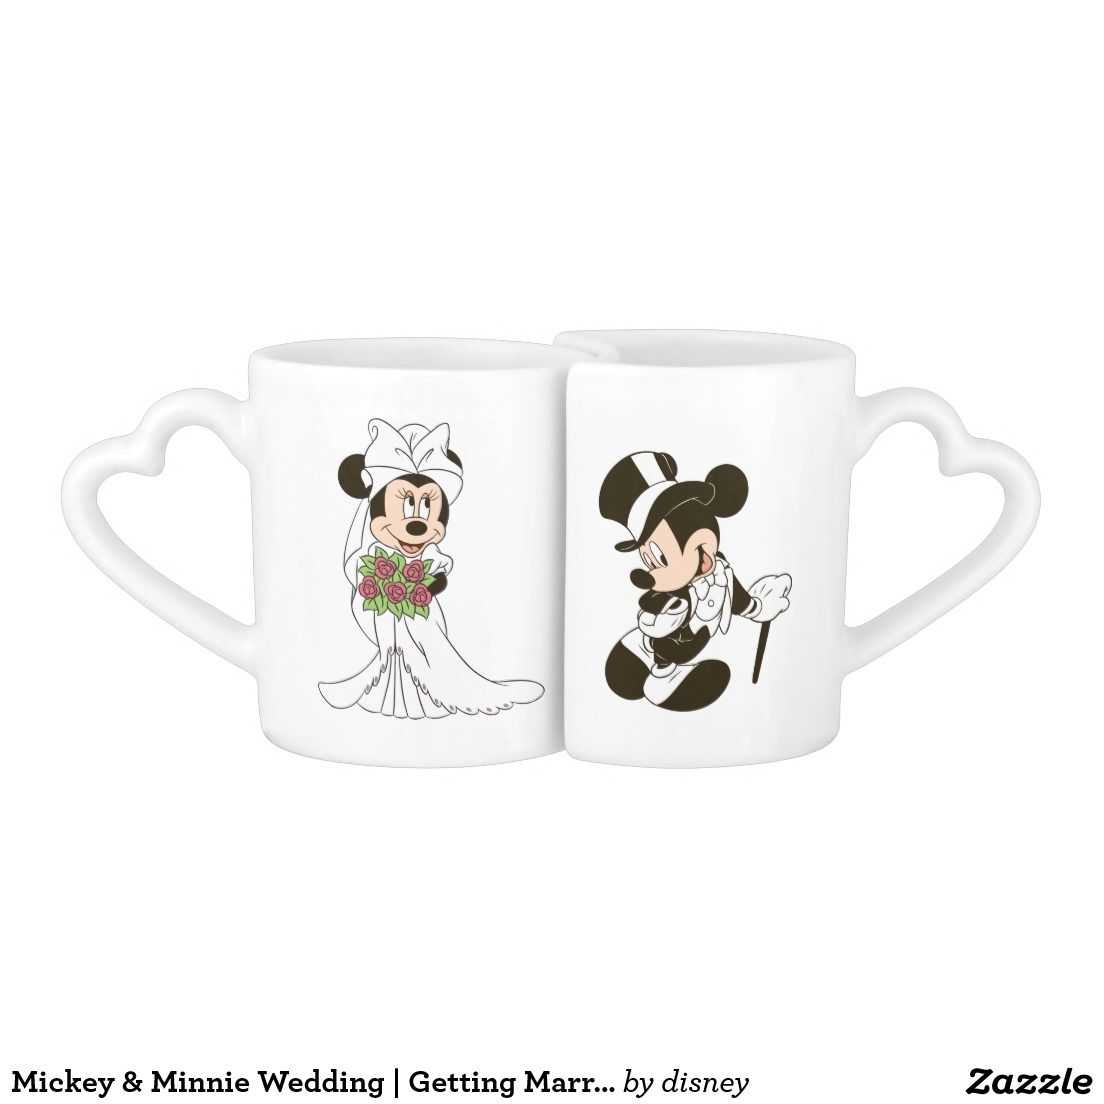 Disney Mickey & Minnie Wedding | Getting Married Coffee Mug Set ...